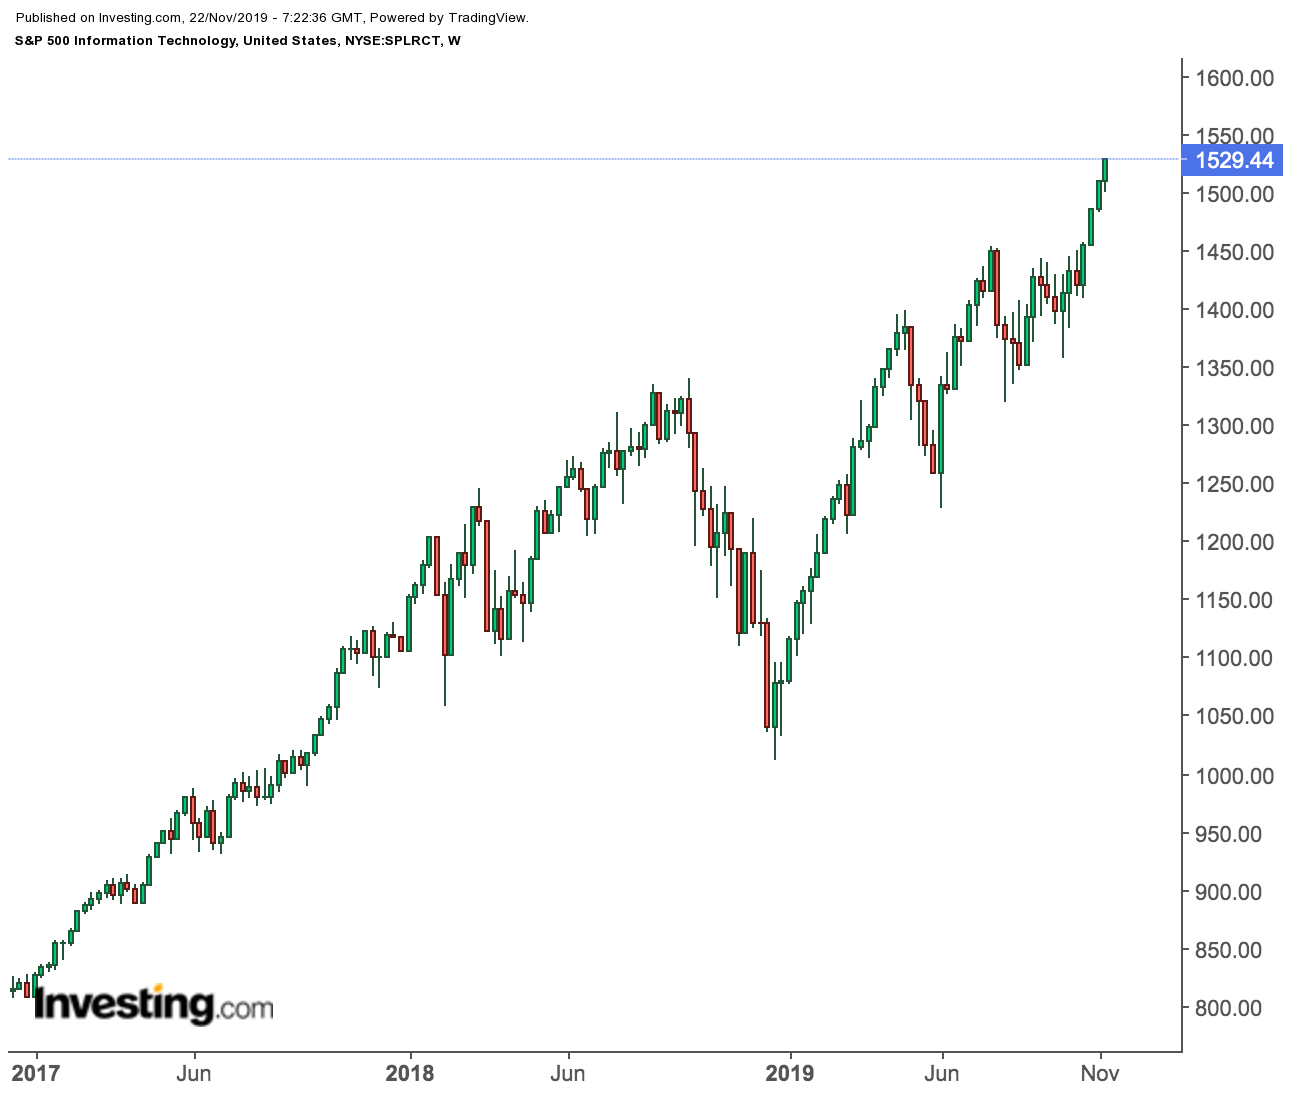 S&P 500 Technology Stocks Weekly Price Chart